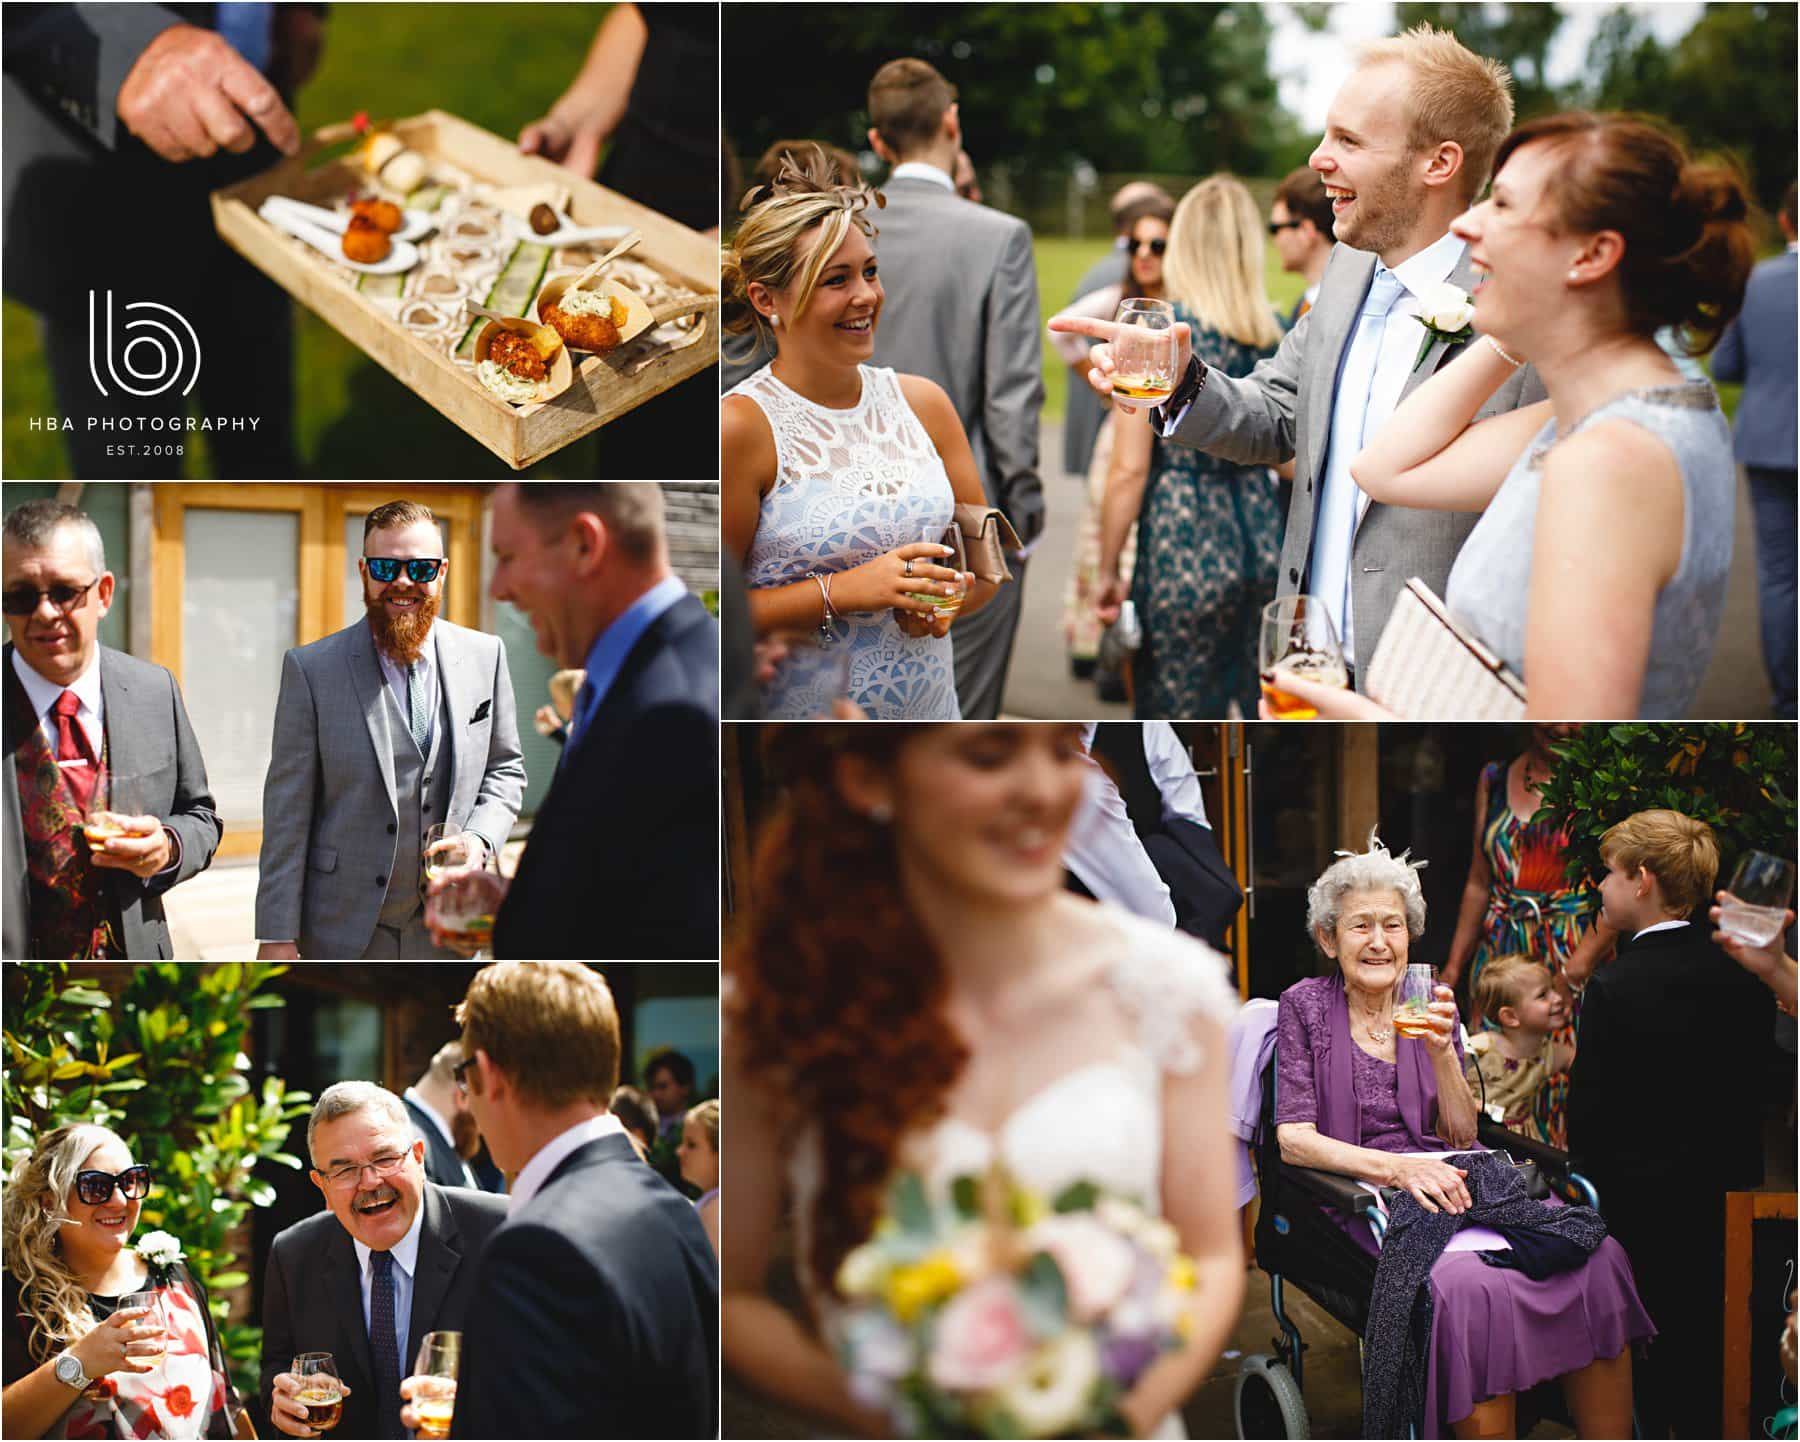 the wedding guests at a mythe barn wedding